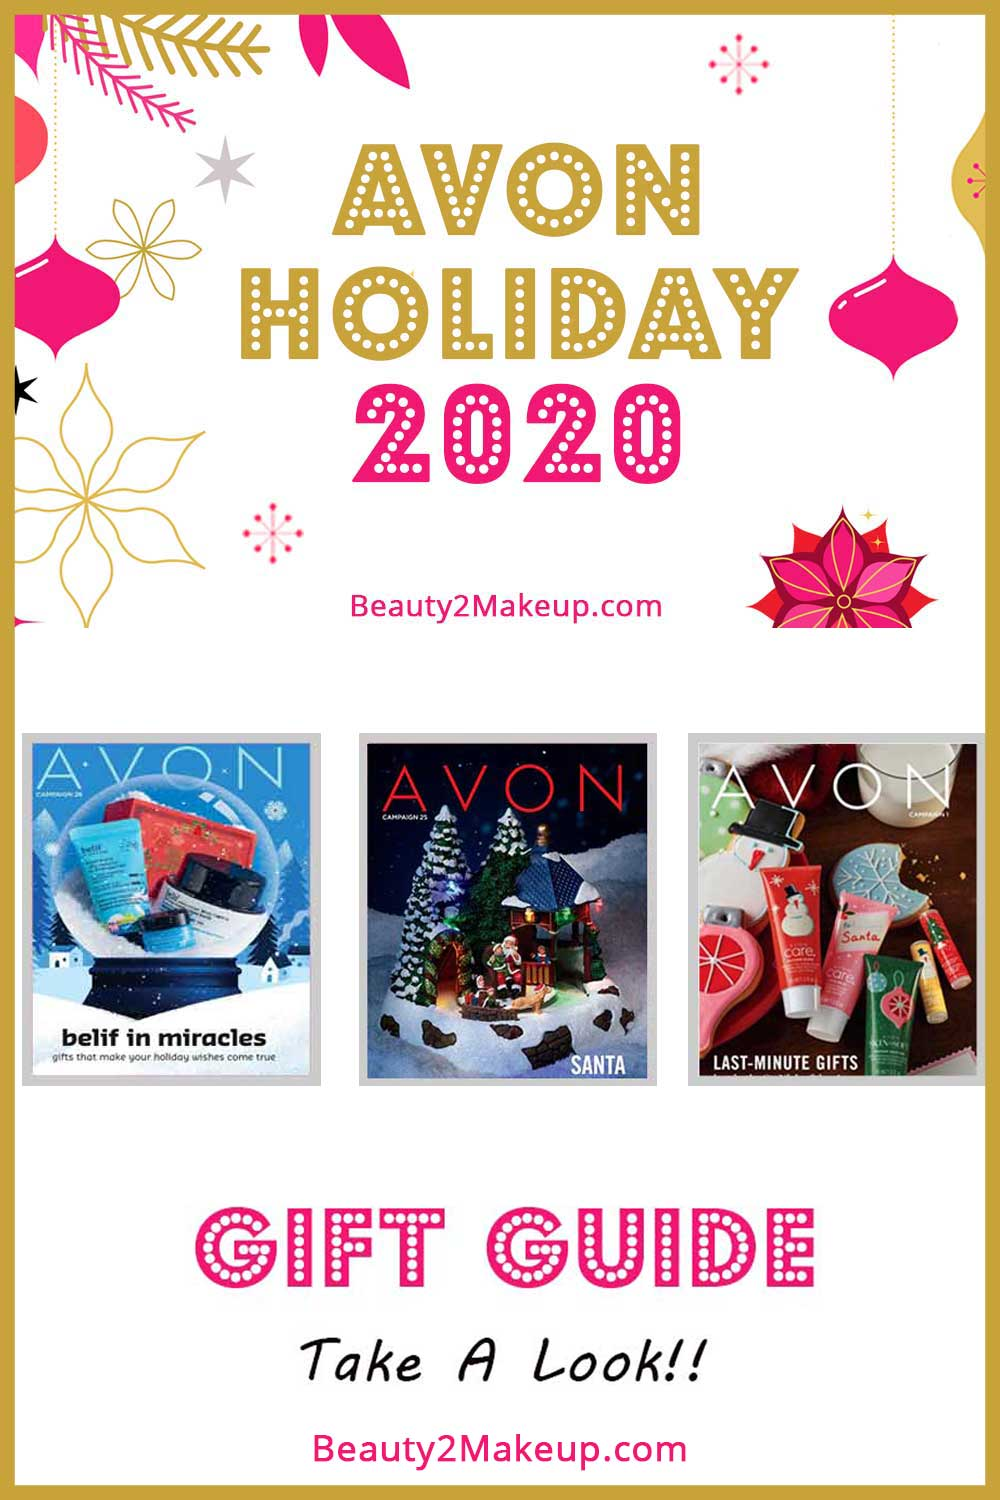 Avon Holiday 2020 Christmas Gifts & Home Decor